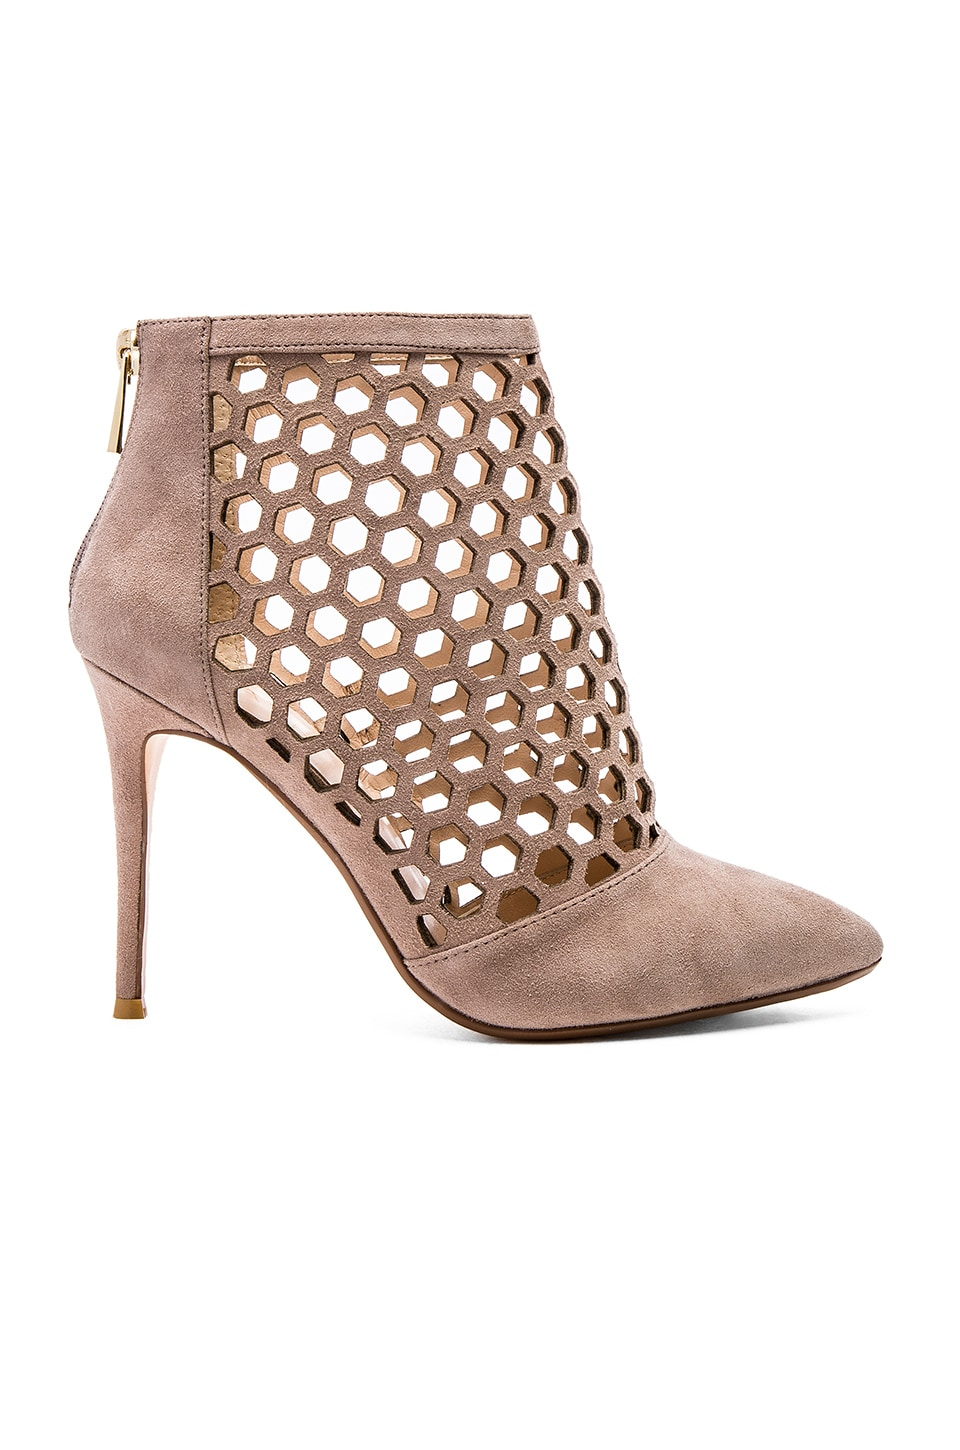 RAYE Tobi Pump in Taupe